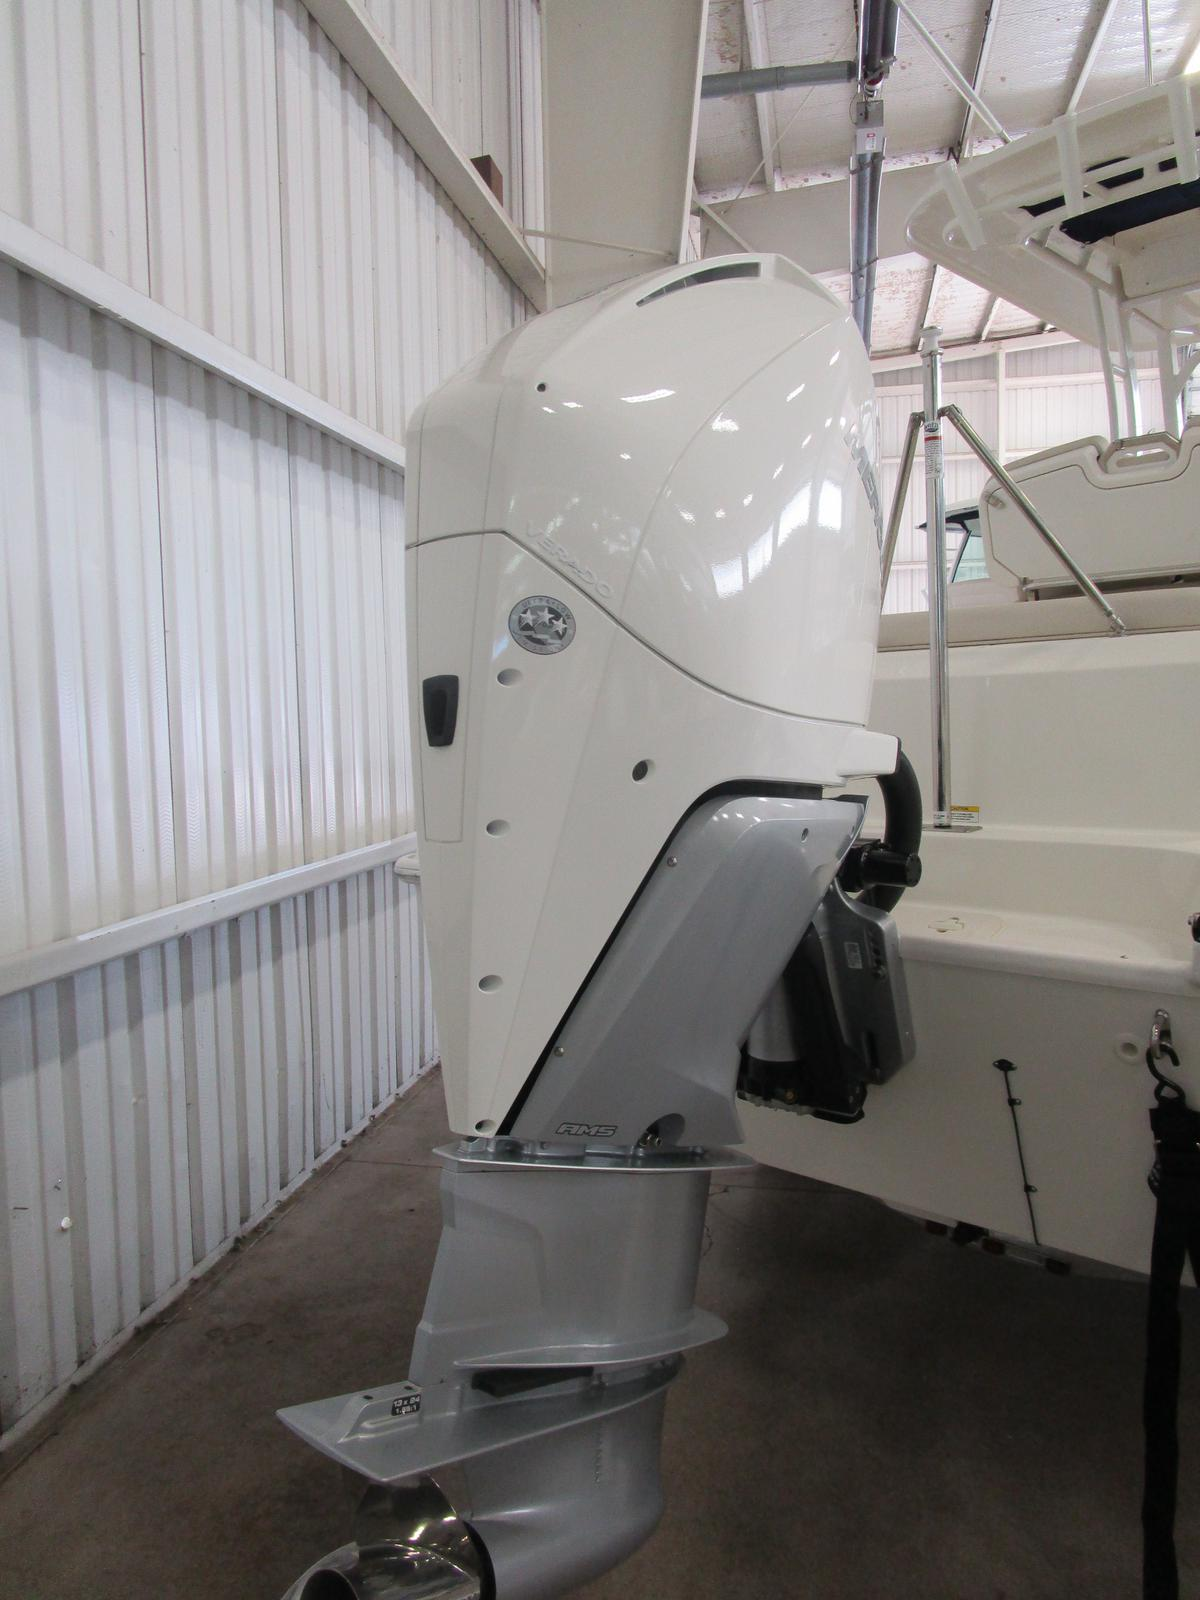 2019 Boston Whaler boat for sale, model of the boat is 230 Outrage & Image # 5 of 10